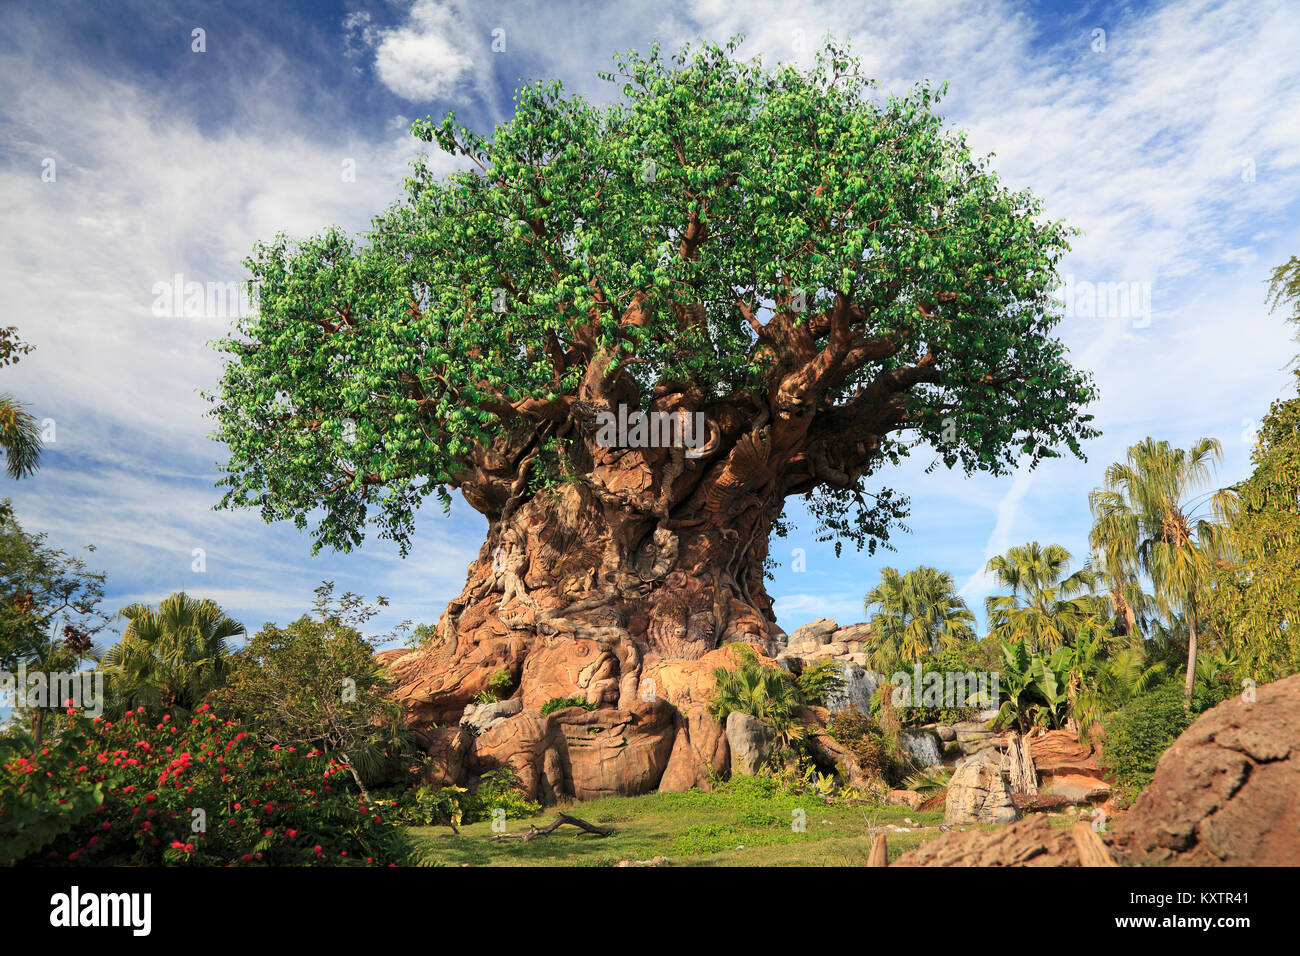 Tree of Life in Disney Animal Kingdom Theme Park, Orlando, Florida - Stock Image